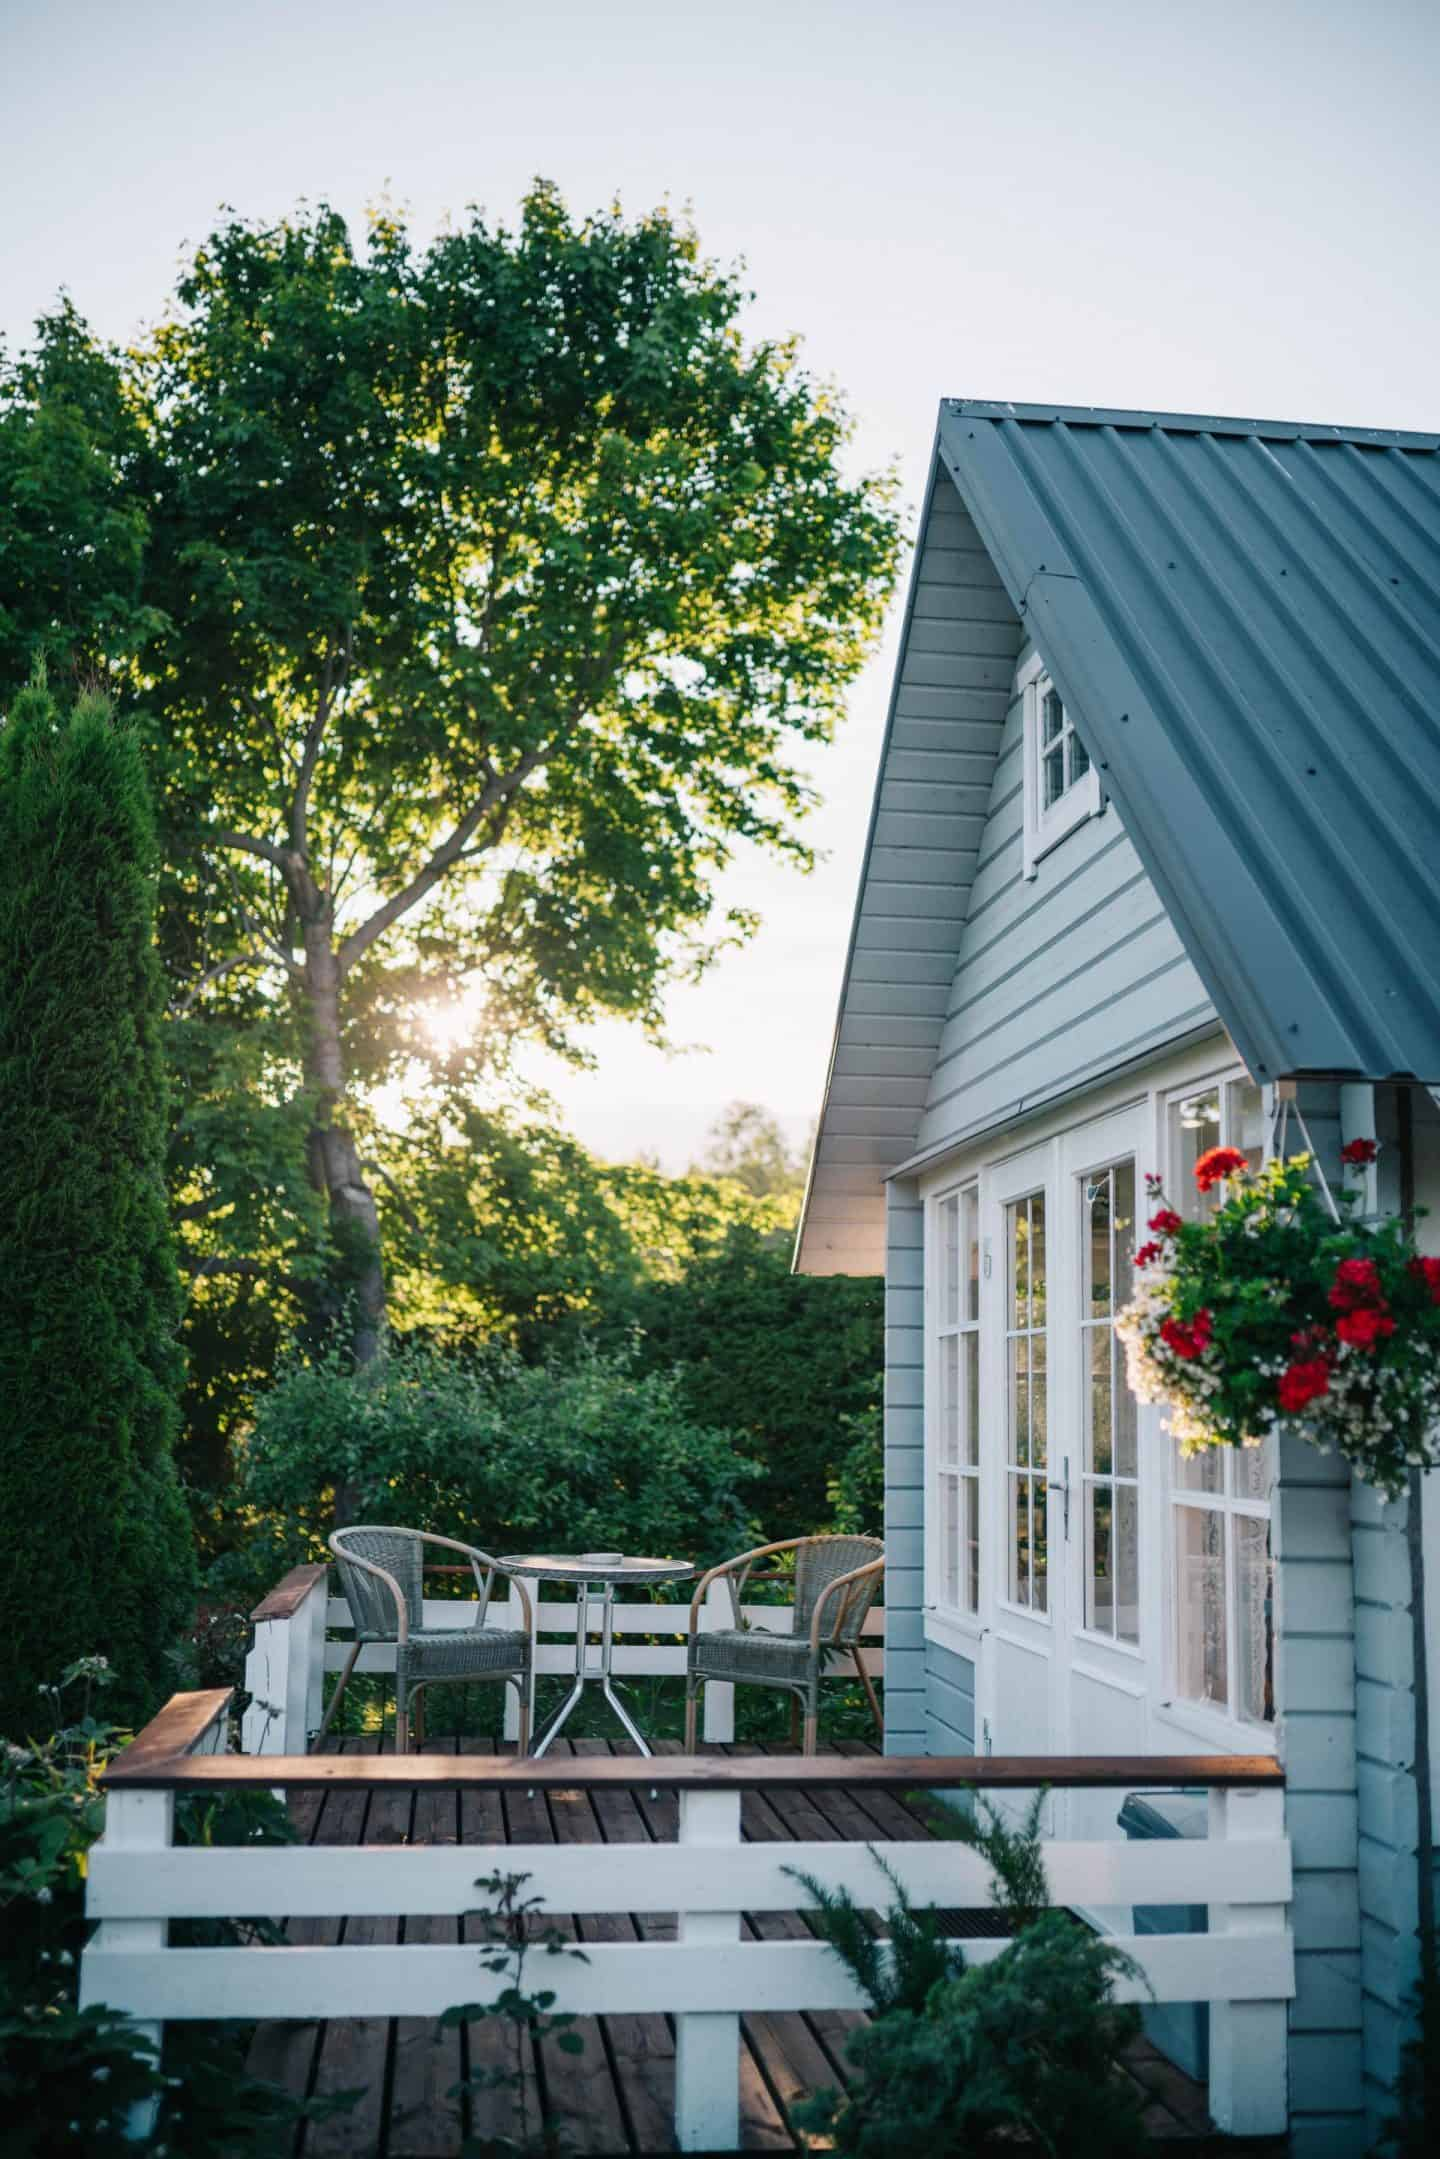 5 reasons to buy a house rather than a flat